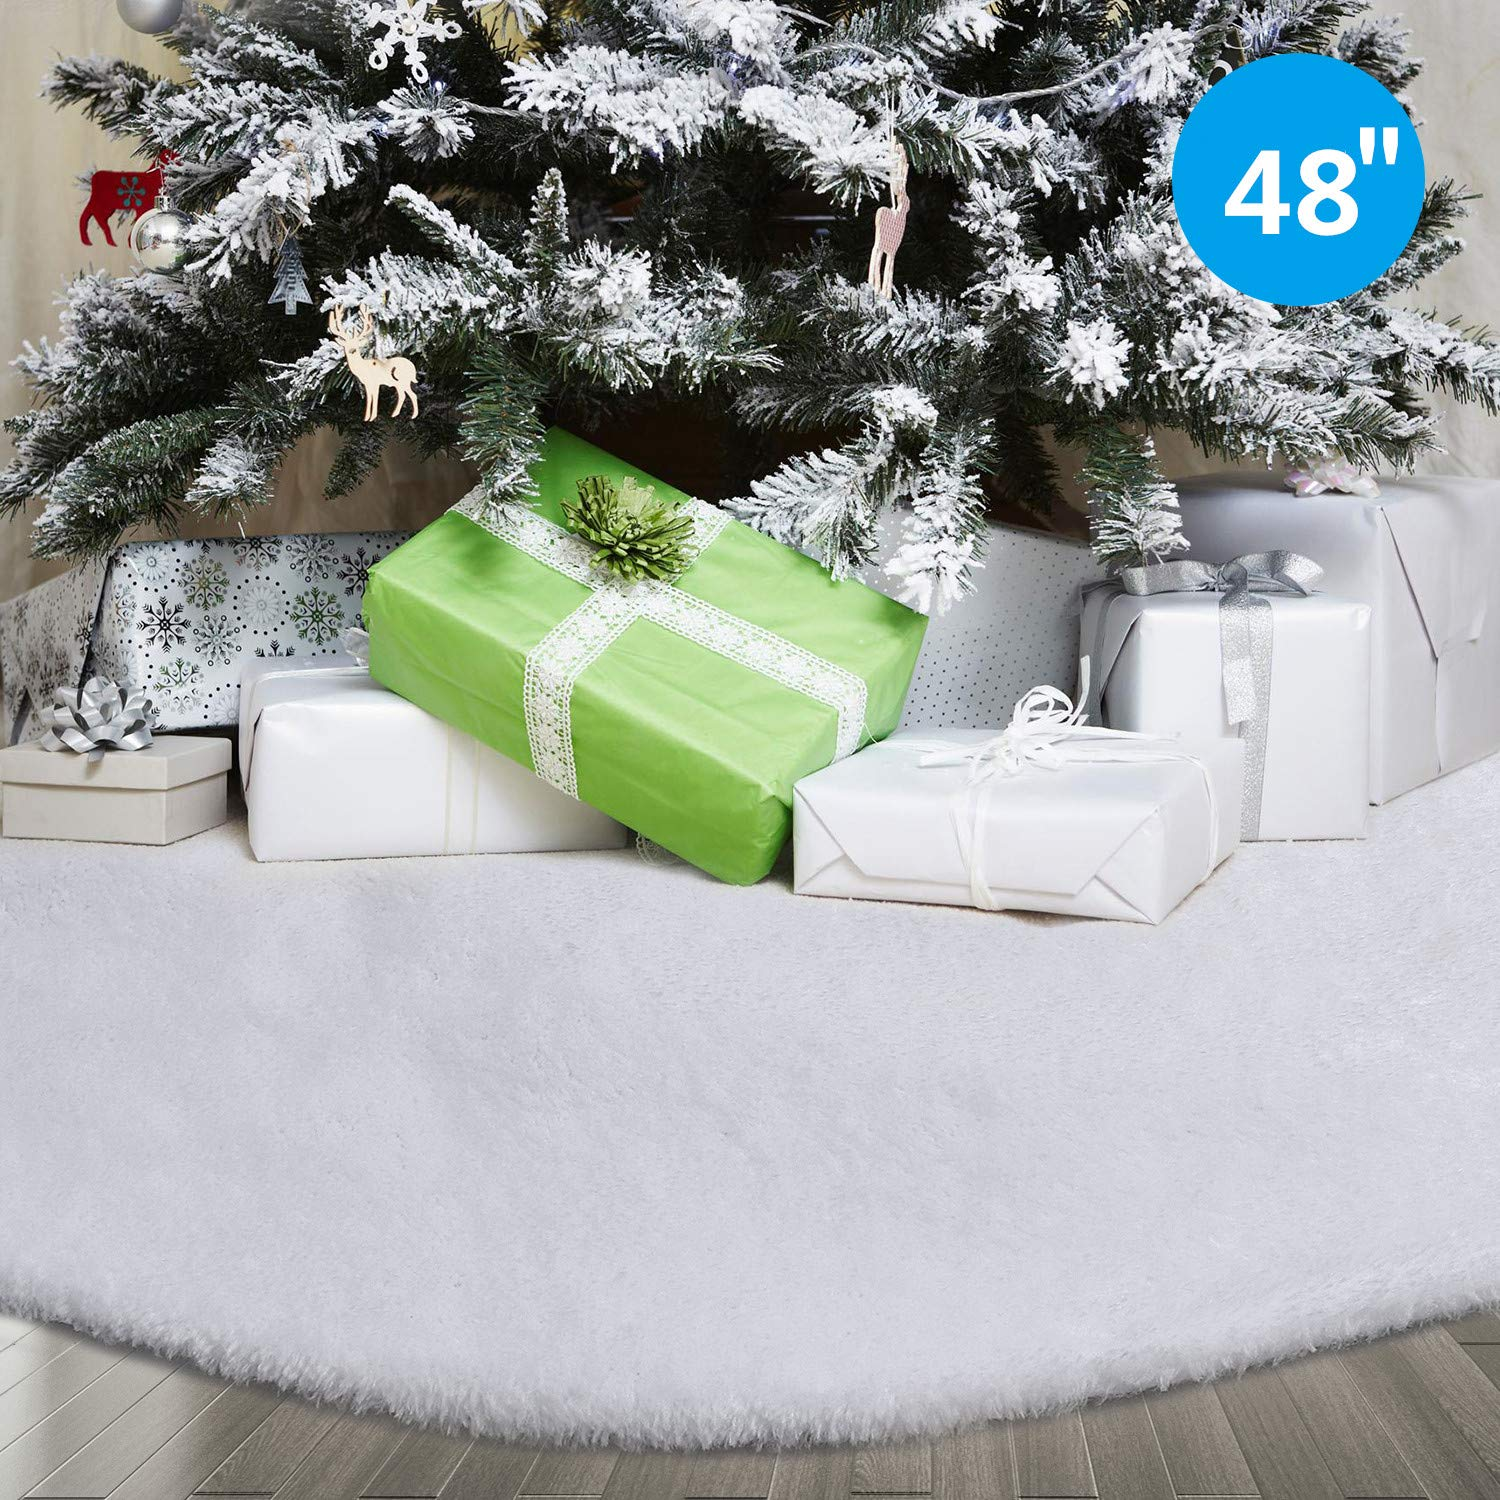 Classic Christmas Plush Tree Skirt with White Faux Fur CCBOAY 48inch Christmas Tree Skirt Perfect for Xmas Holiday Decorations New Year Party